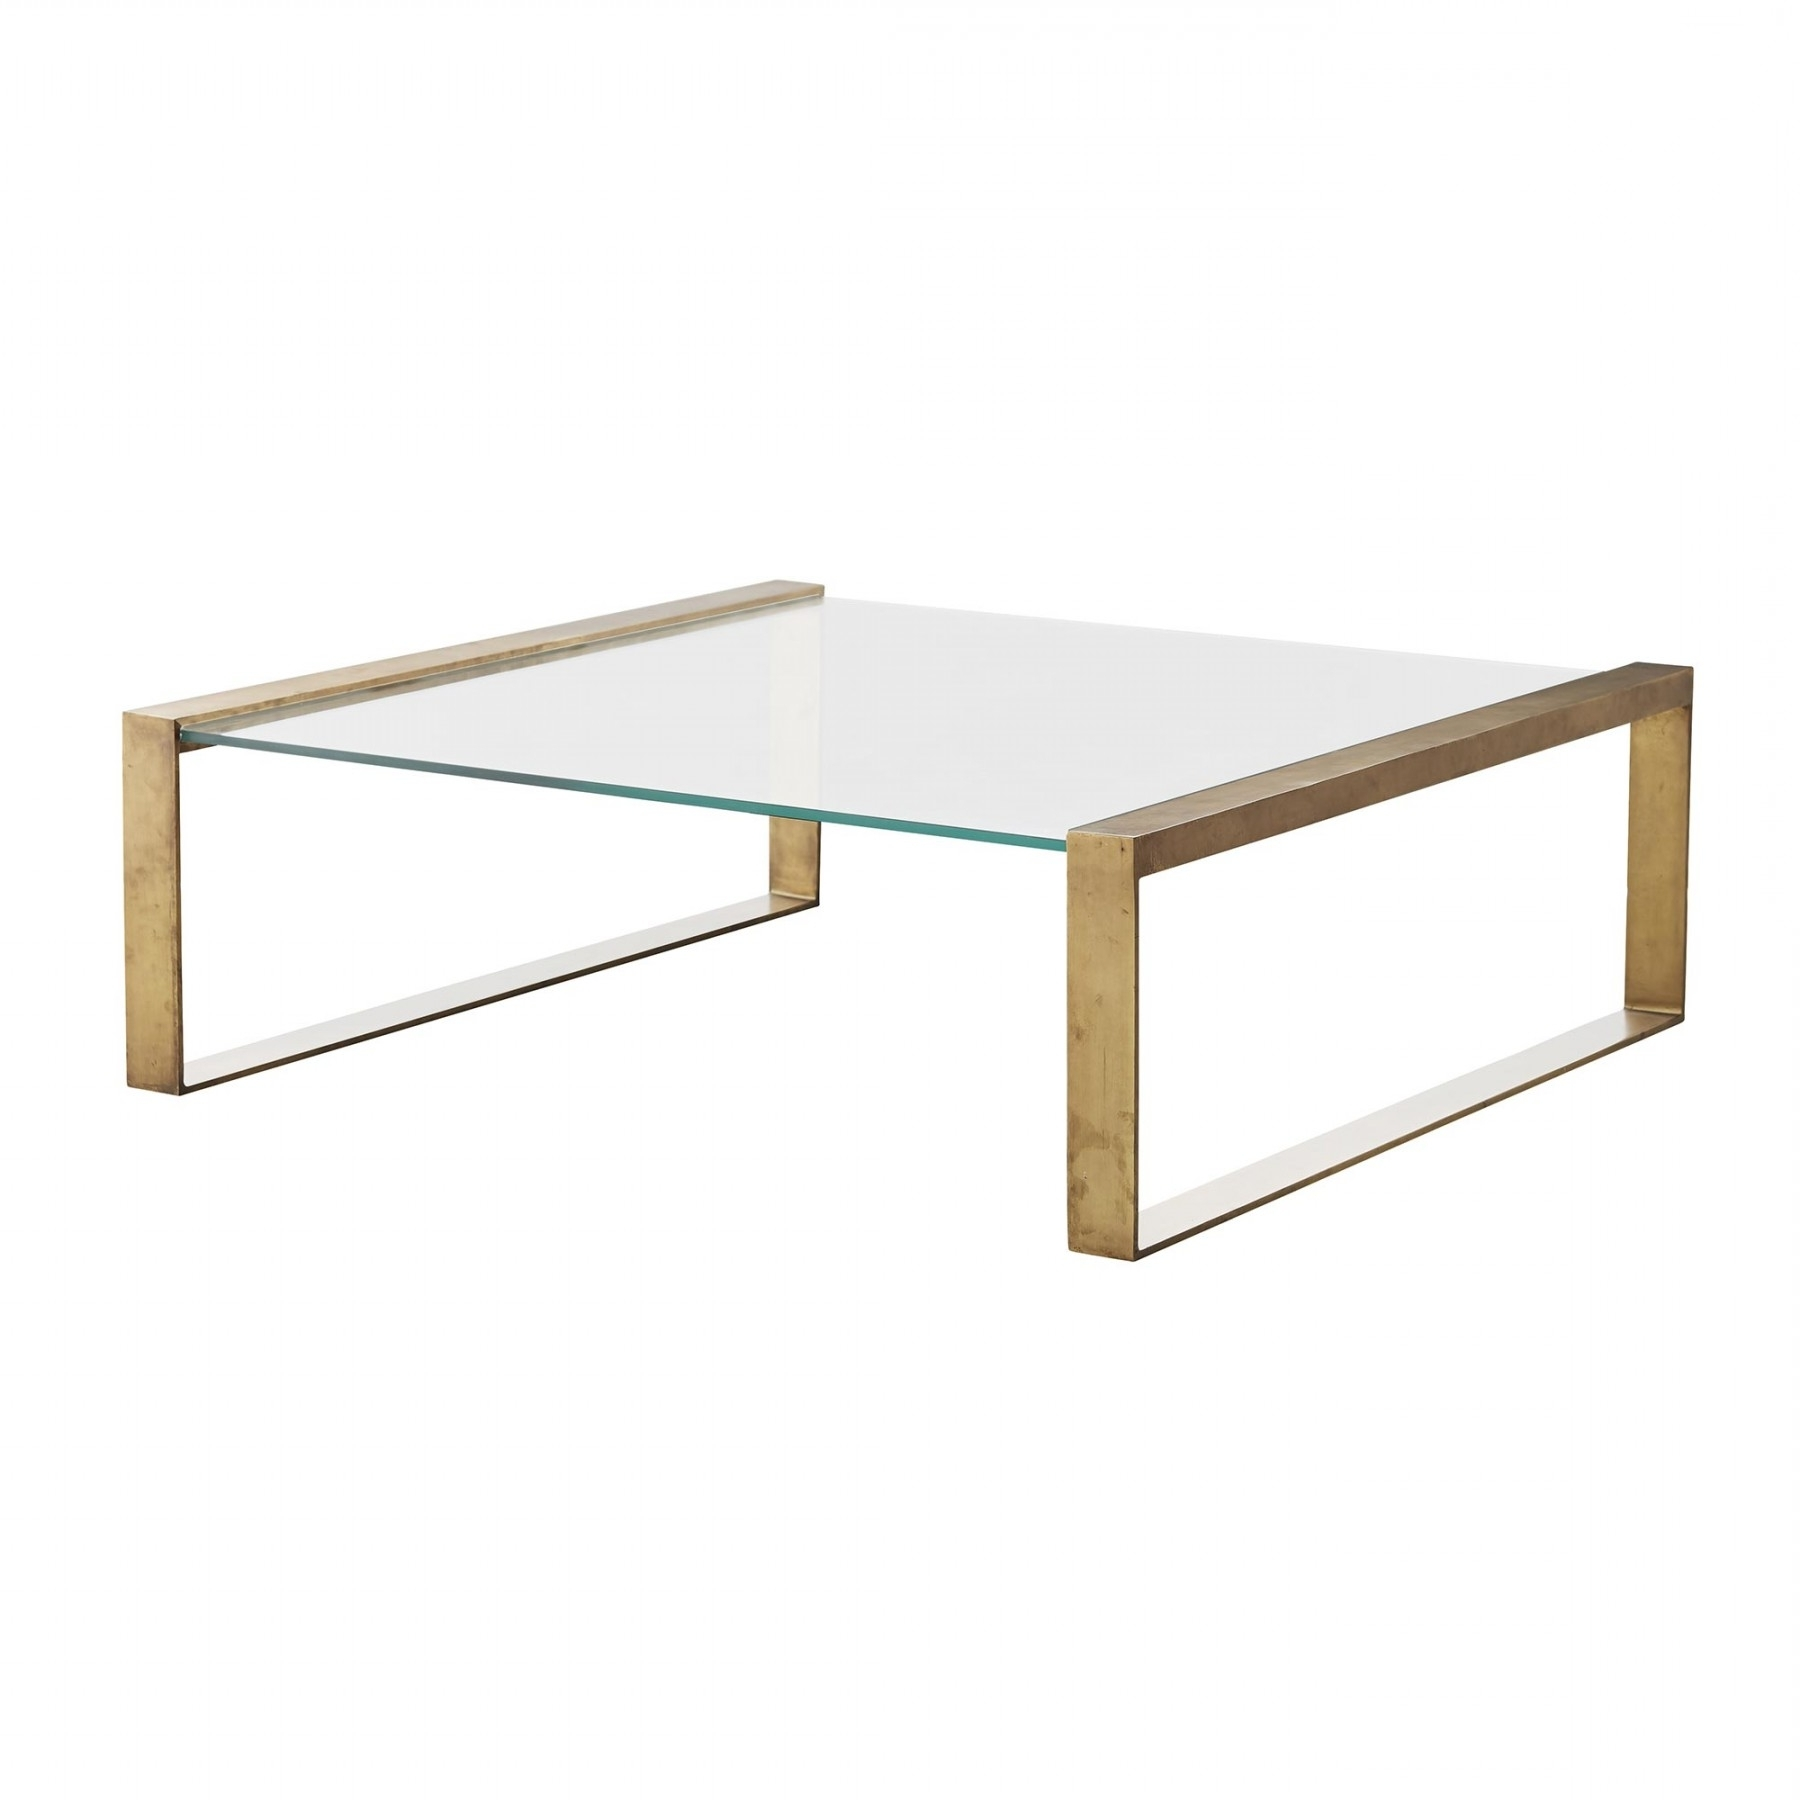 Widely Used Rectangular Brass Finish And Glass Coffee Tables Pertaining To Jocelyn Coffee Table (View 18 of 20)